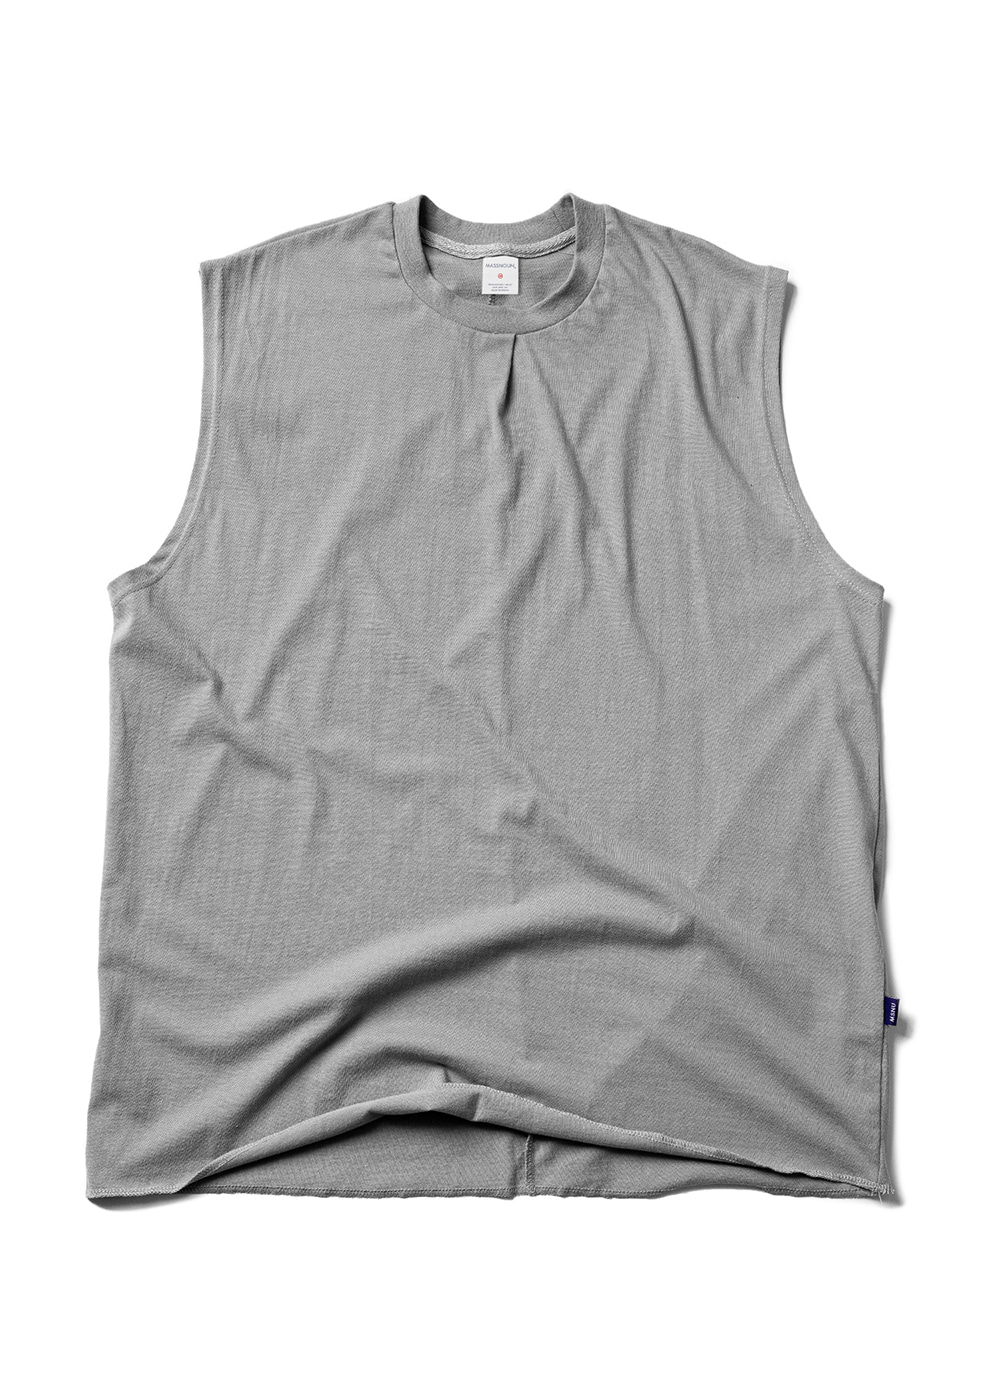 RESTRUCTURE OVERSIZED SLEEVELESS MUZSV002-DG